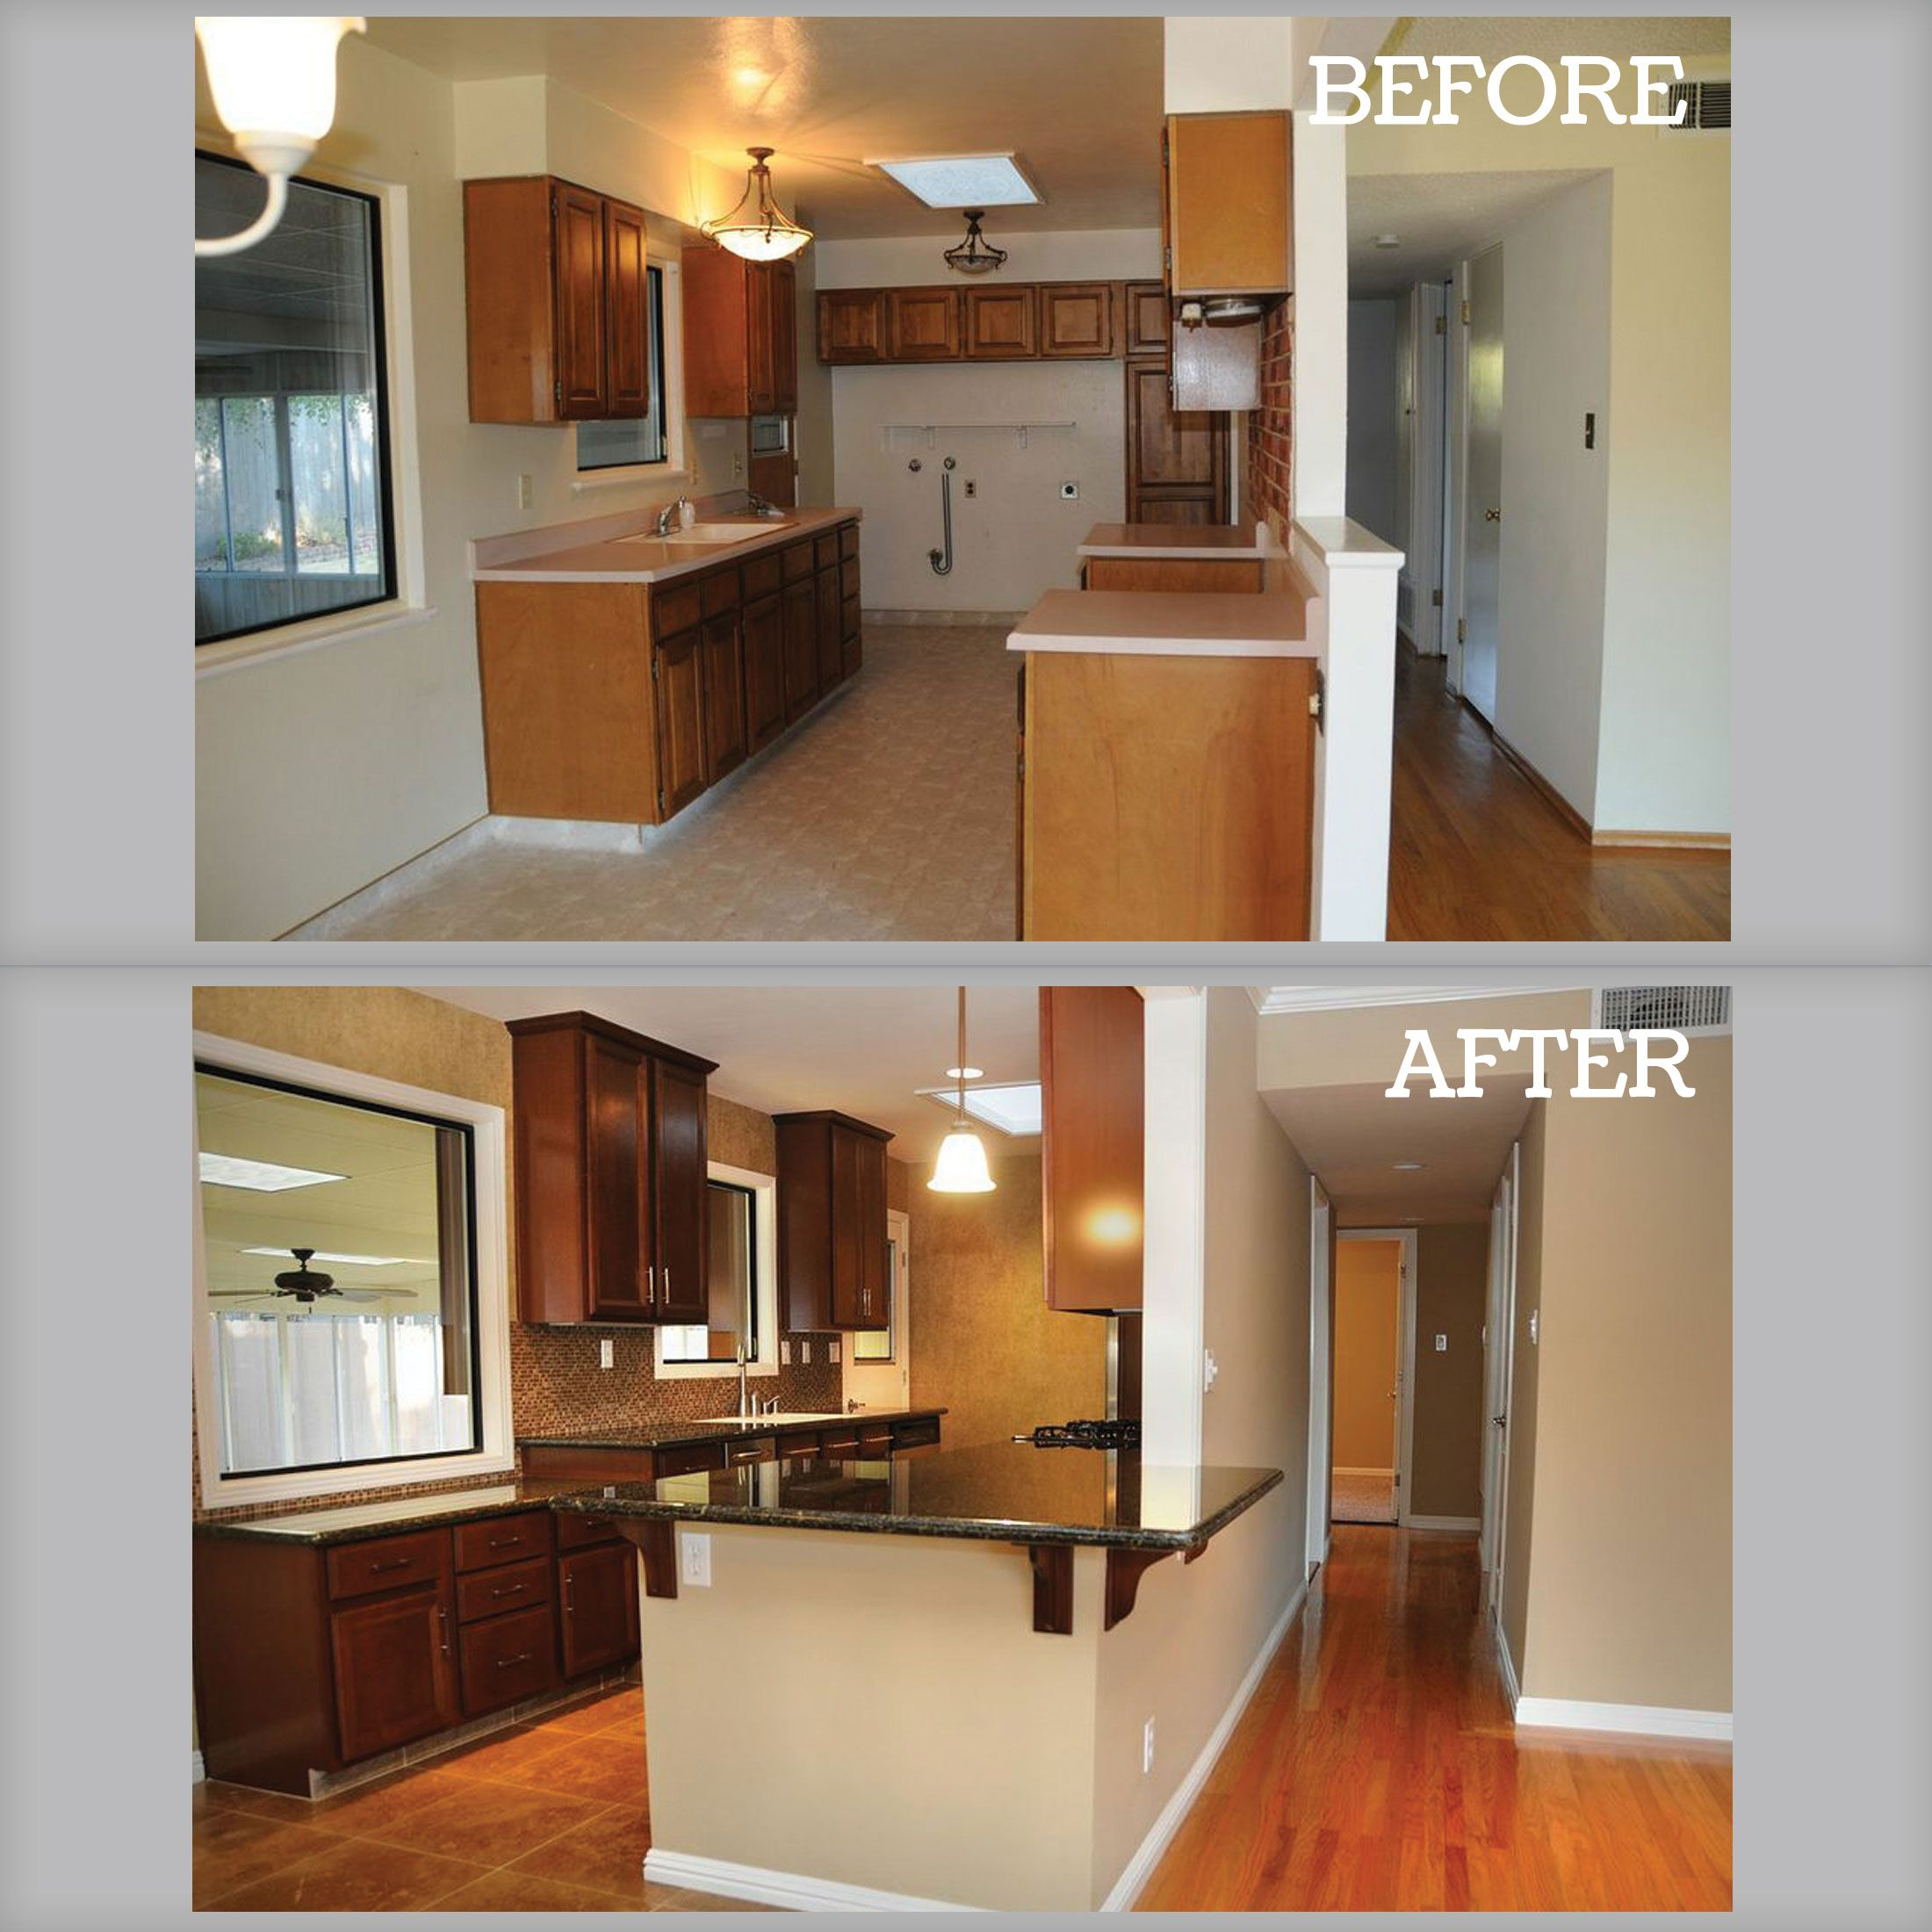 a before and after photo of a kitchen remodel hybrid homes did using a 203k renovation l on how to remodel your kitchen id=26546